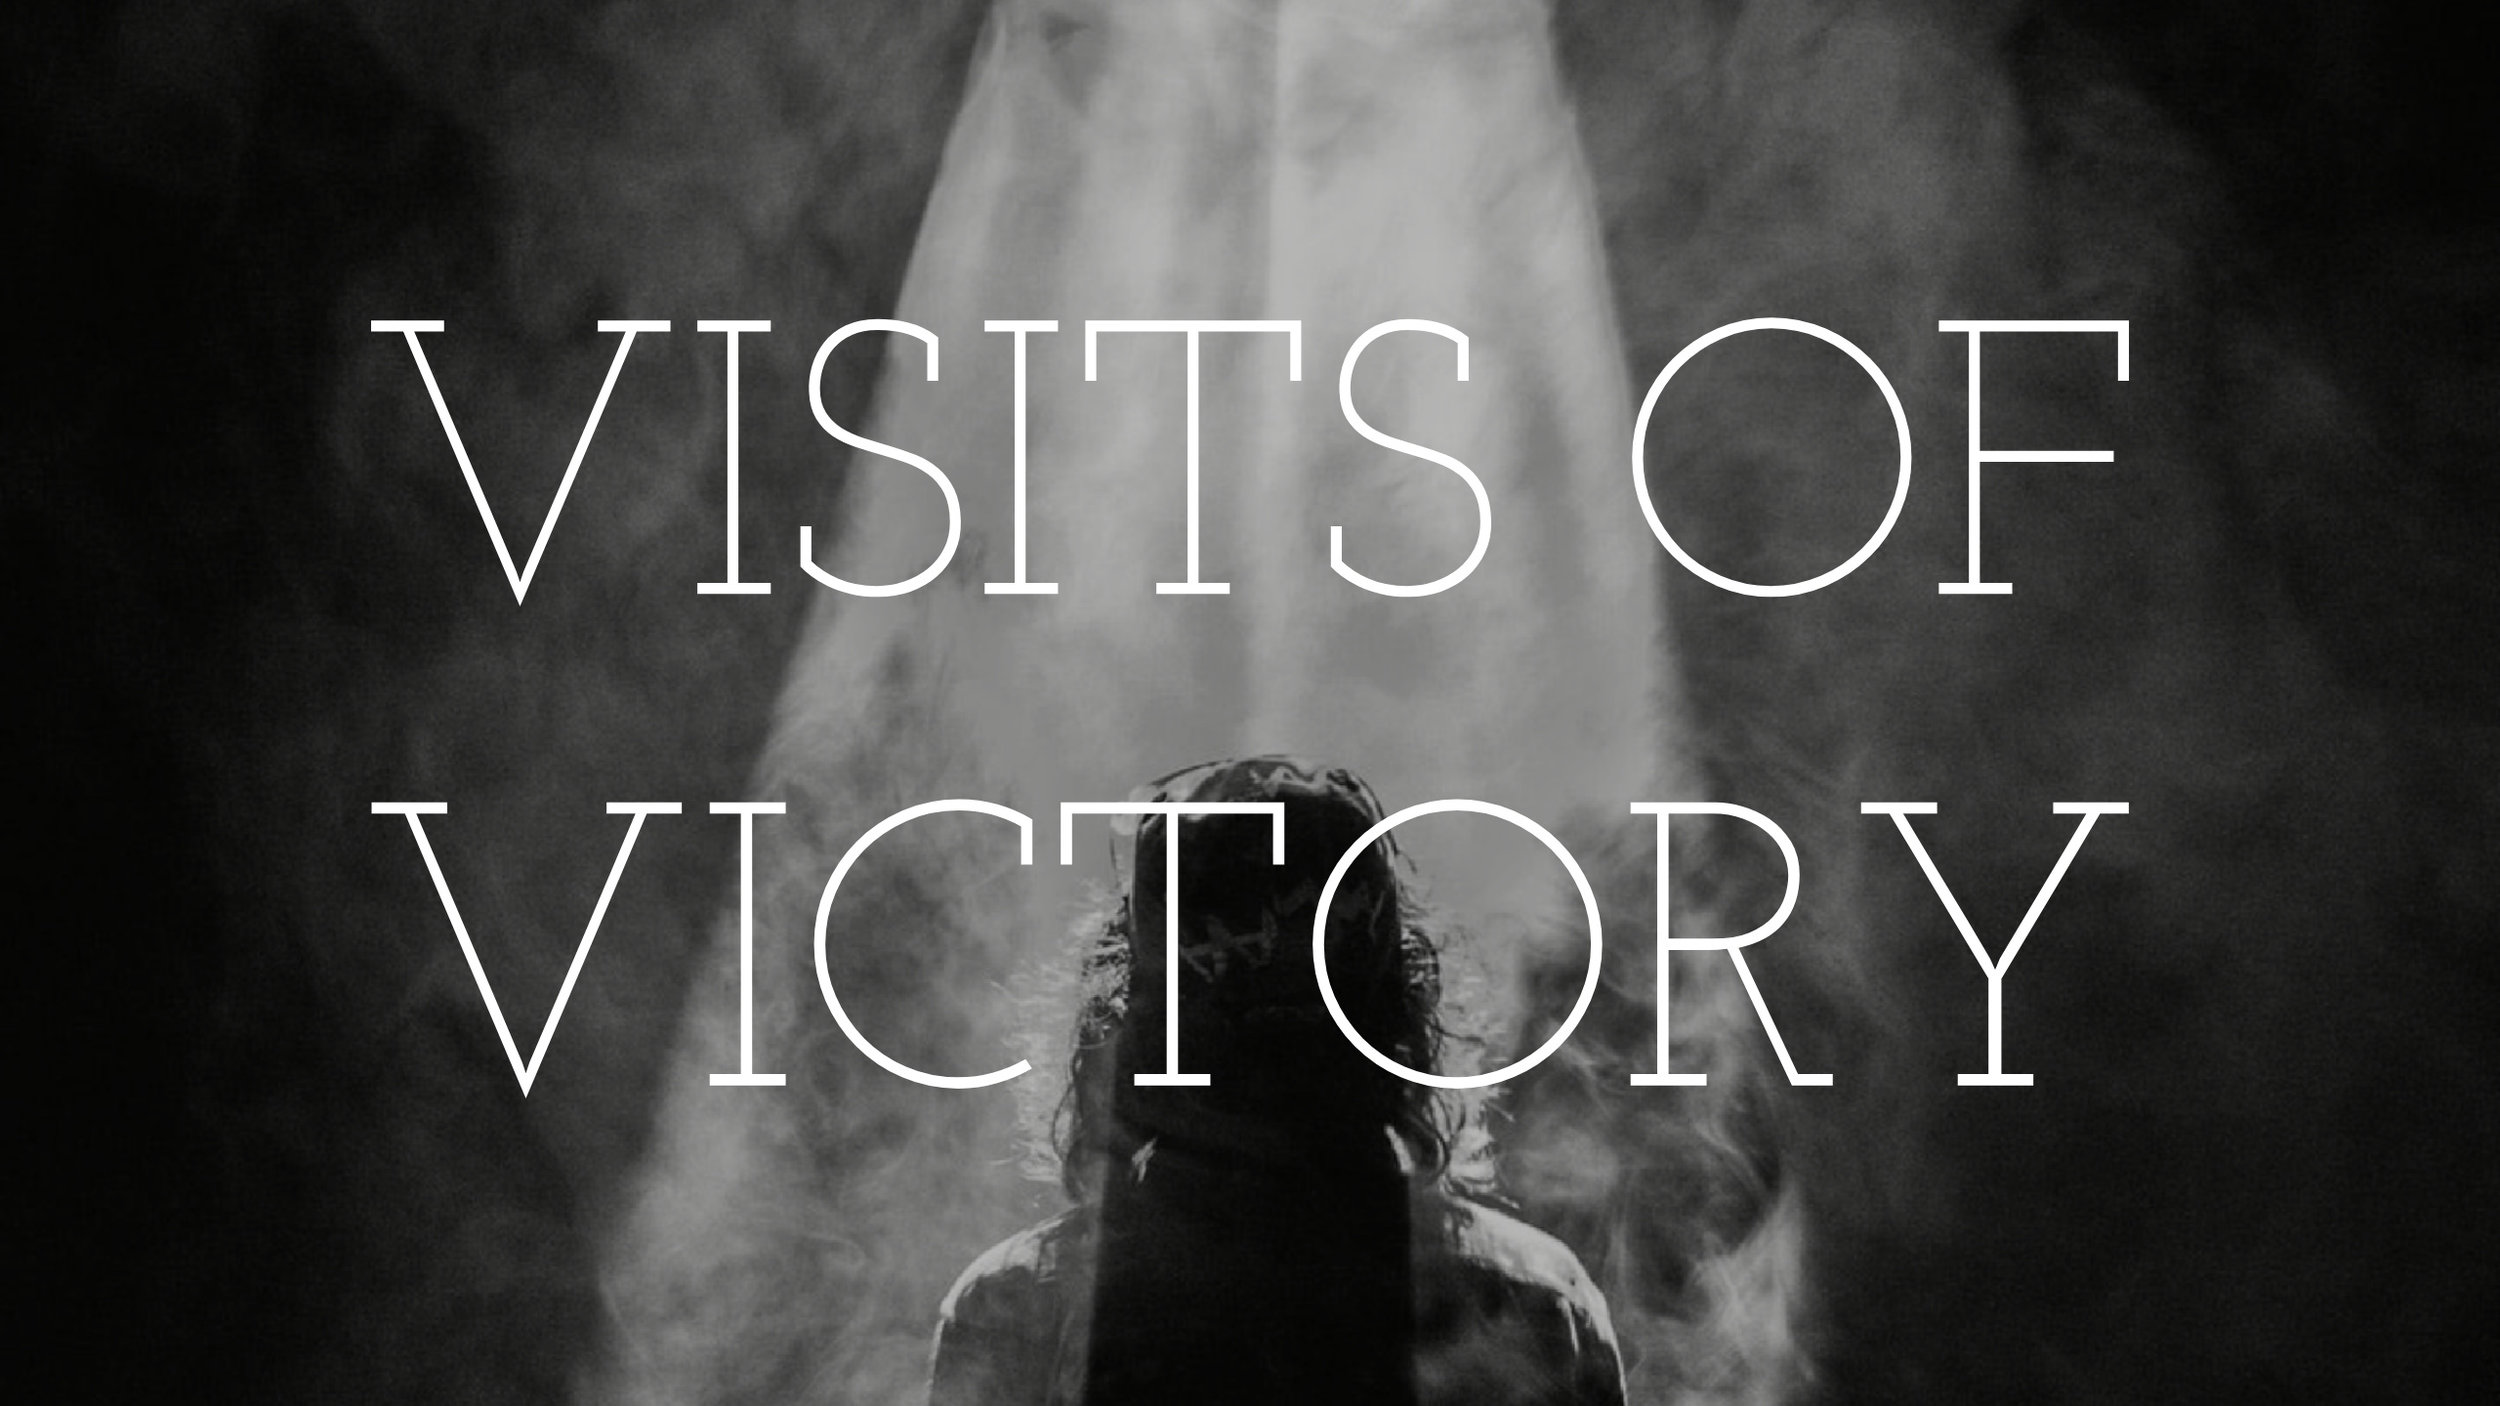 Visits of victory youtube.jpg